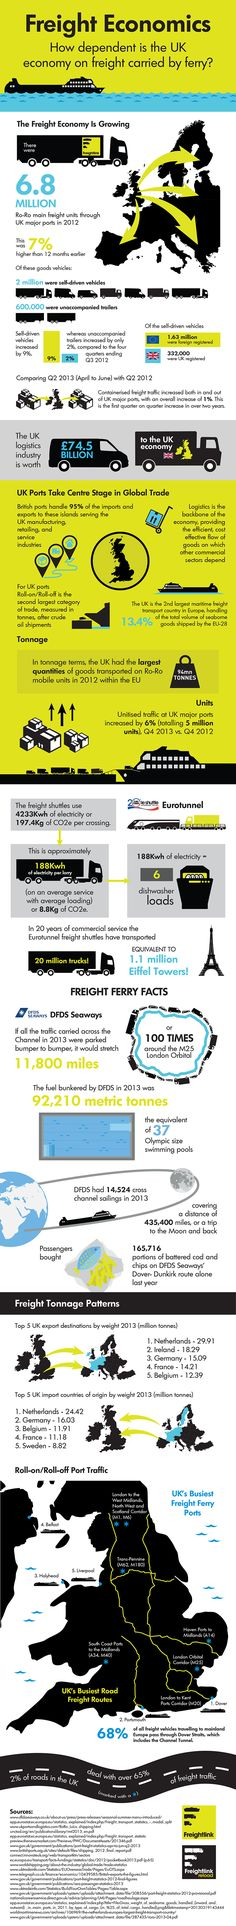 The UK is trying to export its way out of recession and its freight economy bears some truth in this and why its logistics industry is so important to it - Freightlink conducted research and produced an infographic illustrating the UK is dependent on freight ferry transport. See more at Ferrynews.co.uk: http://www.ferrynews.co.uk/news/infographic-how-dependant-uk-economy-freight-ferries